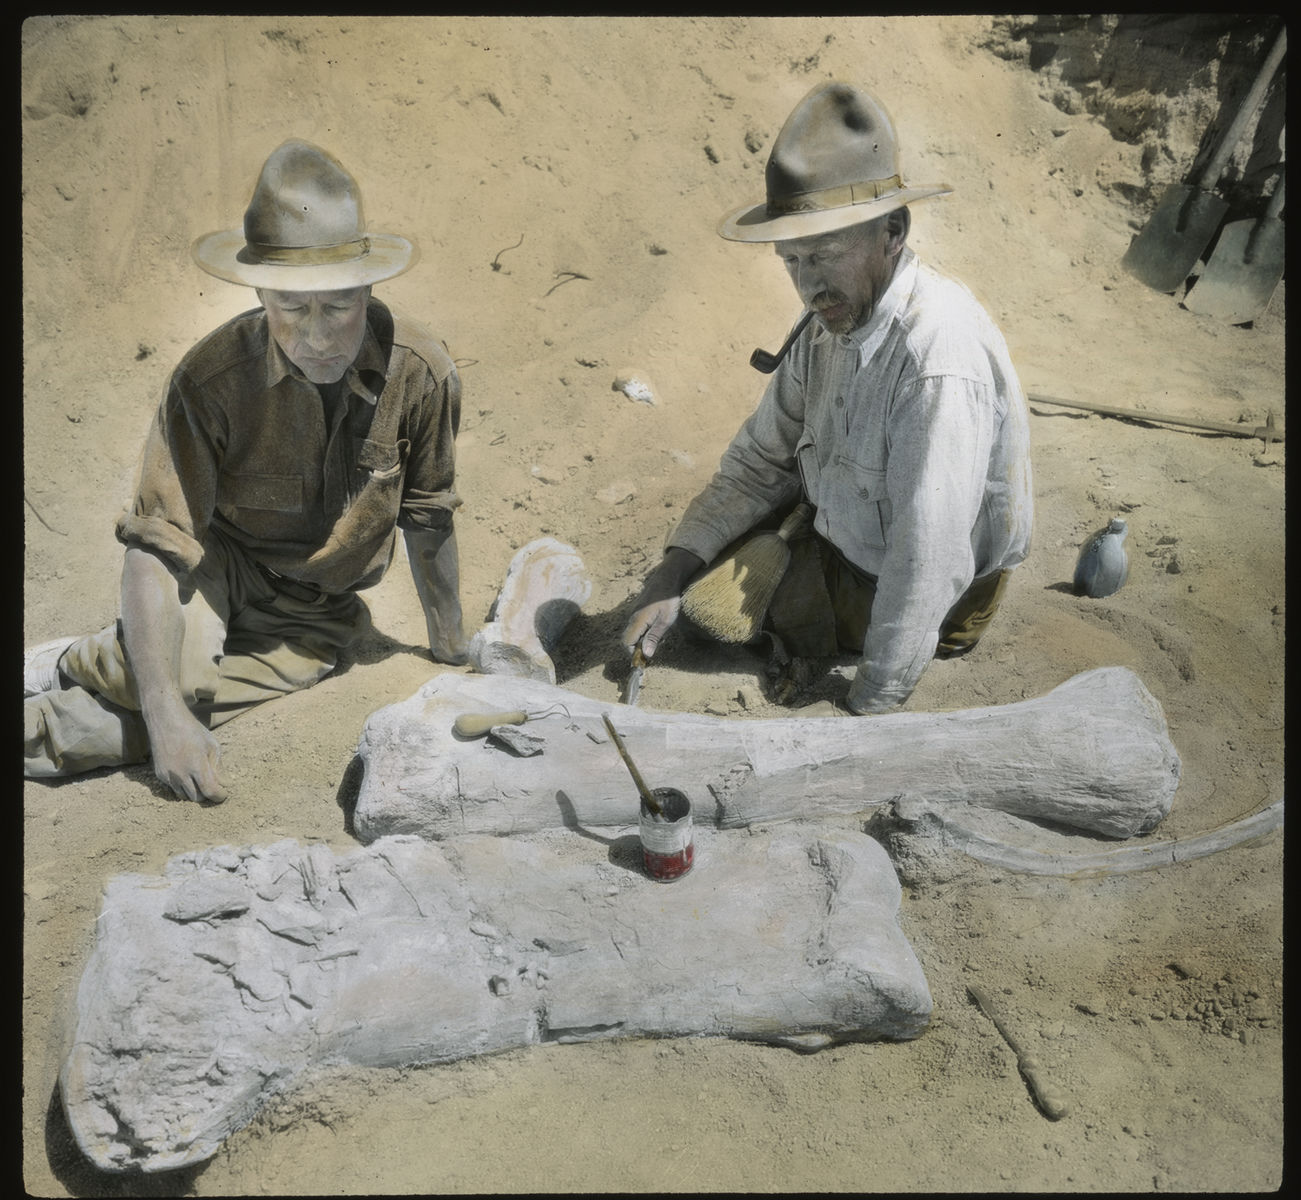 Two men in field gear, one with a pipe, sit on the ground with unearthed fossils.